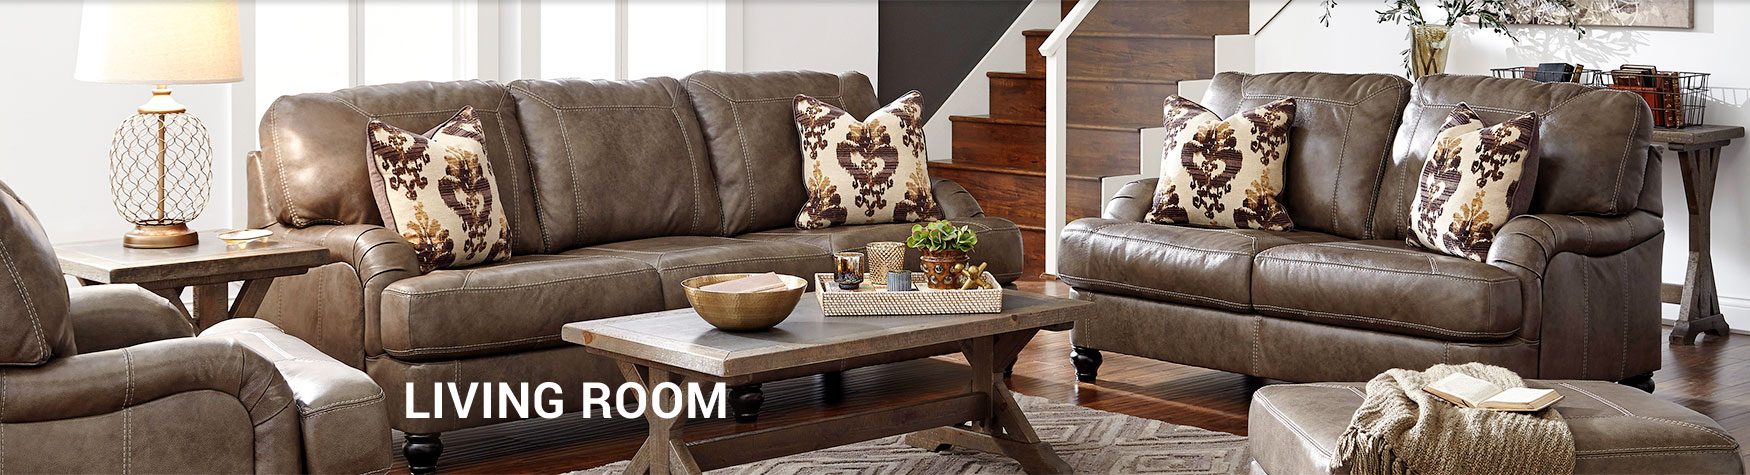 living room furniture for sale how to decorate a small long narrow on in spokane valley wa post falls id jpg